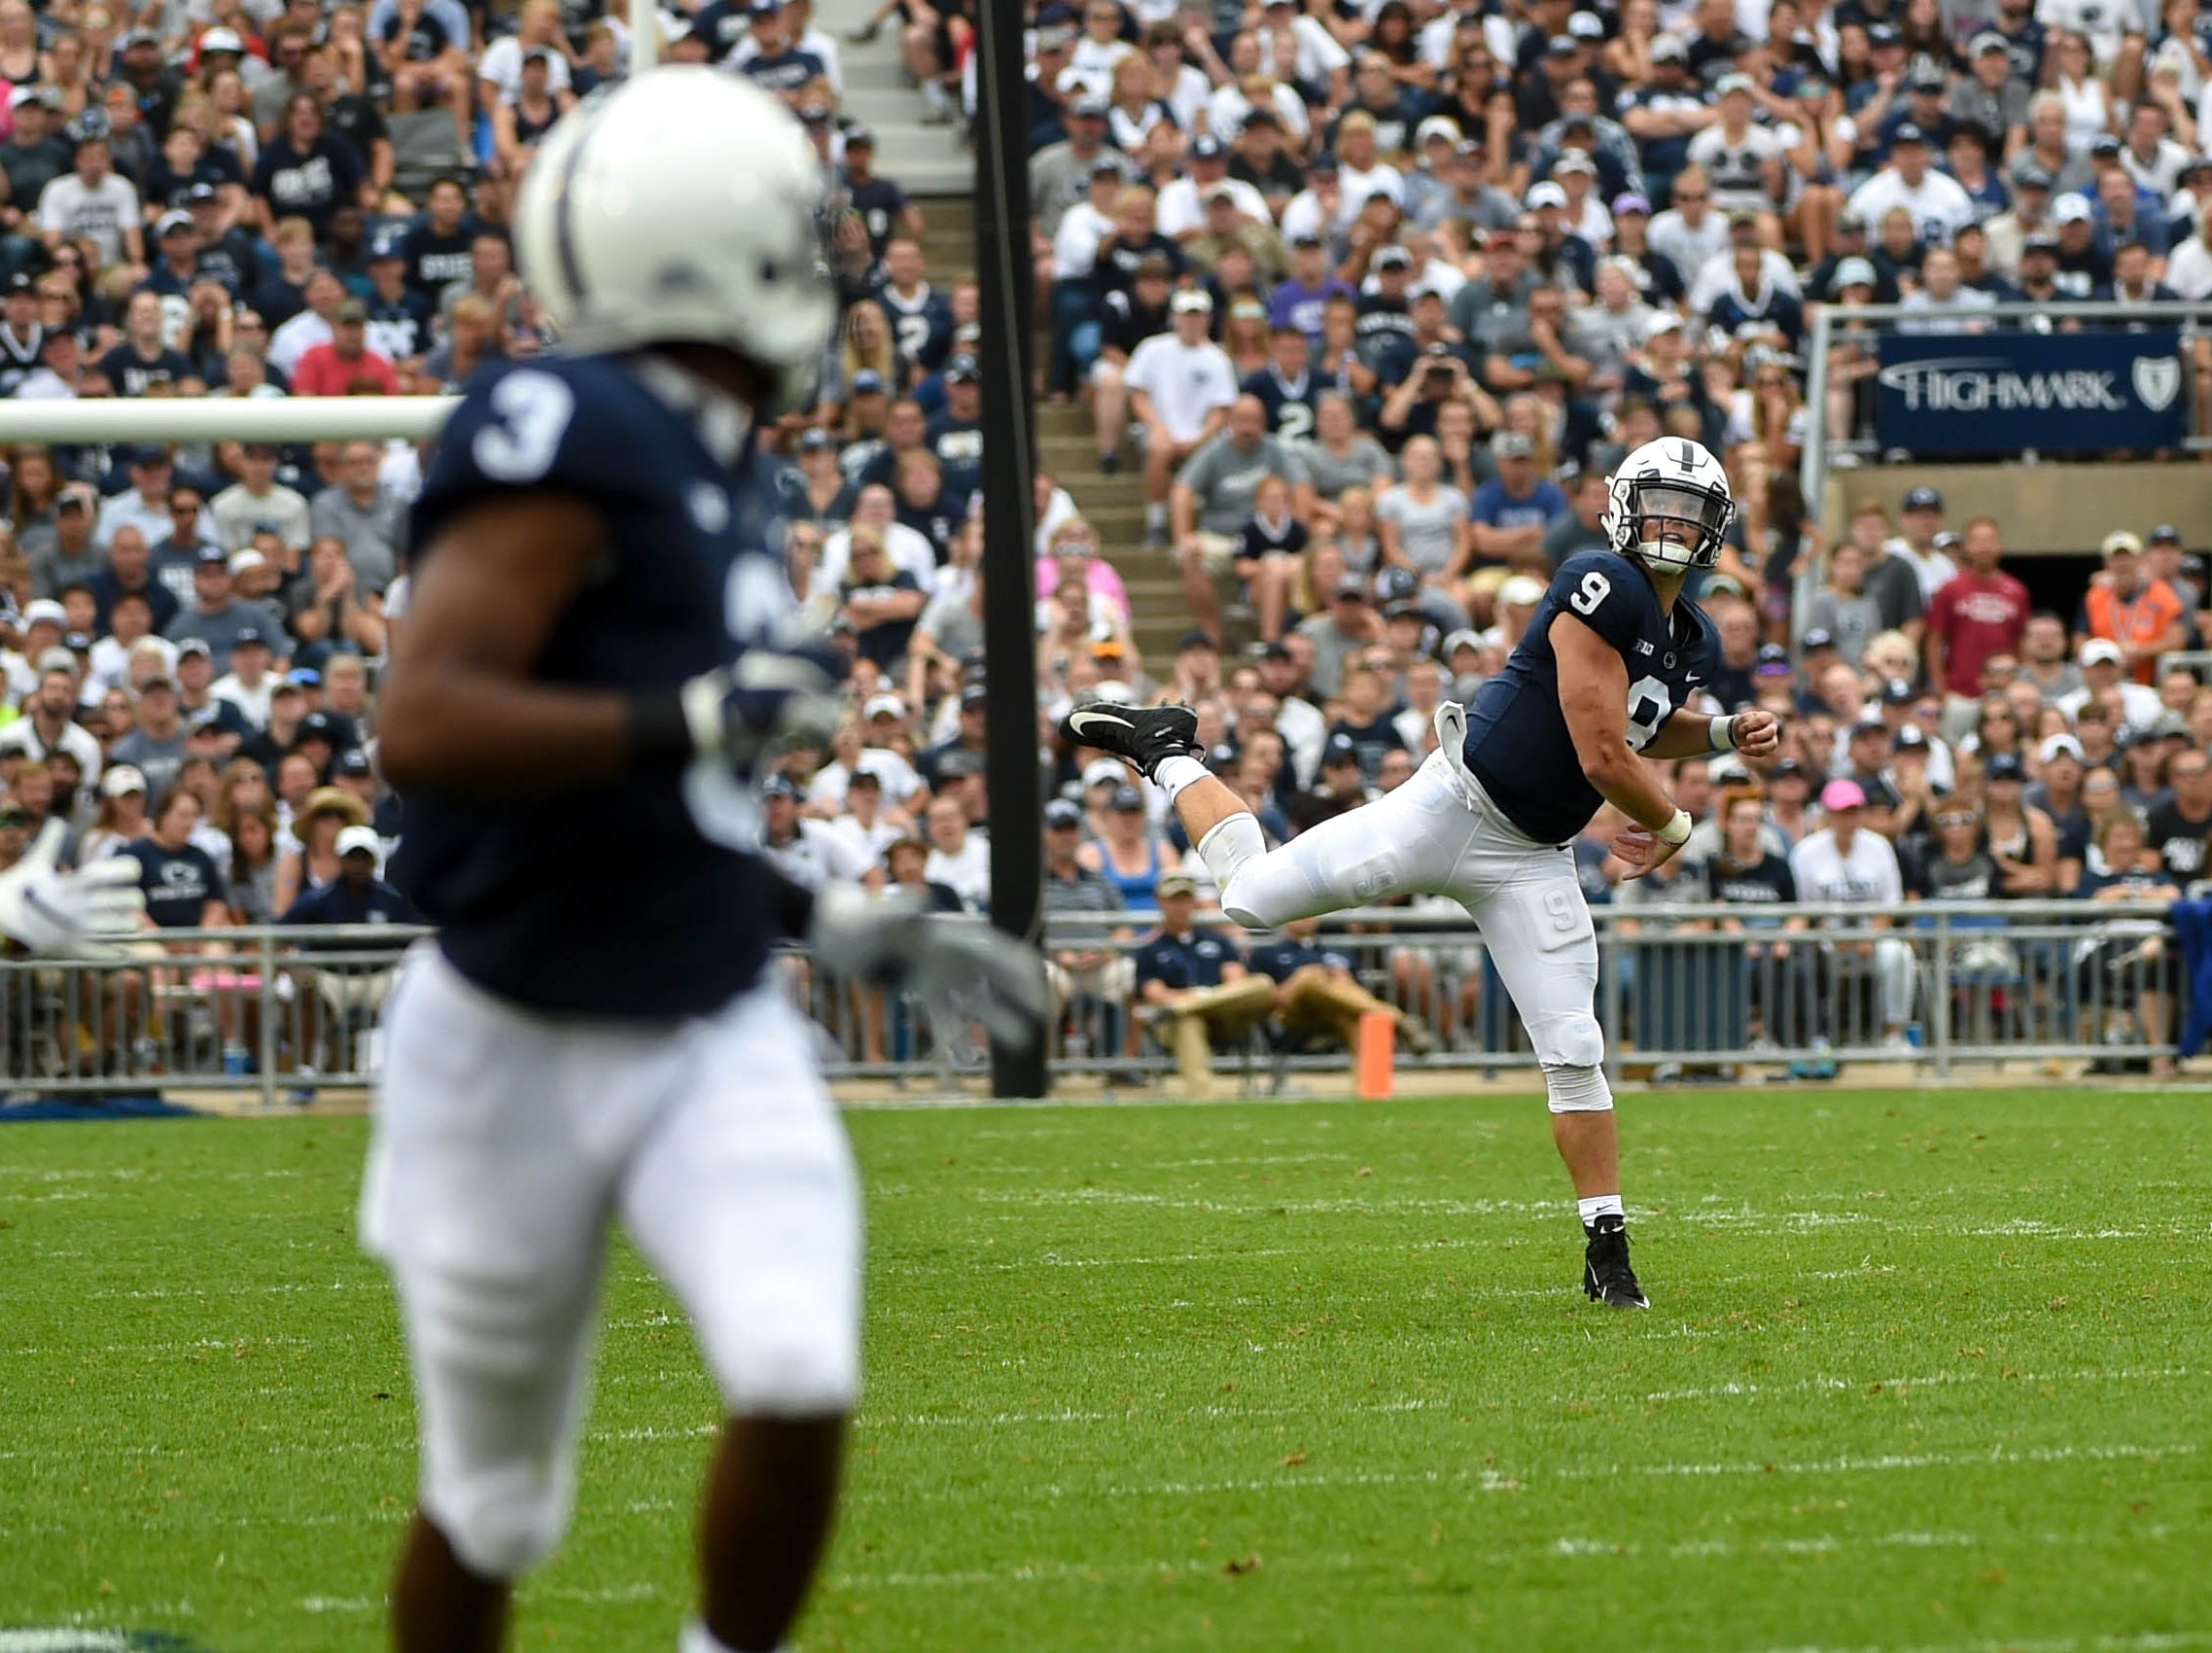 Tace McSorley (9) rockets a pass down field to DeAndre Thompkins (3) during the Penn State game against Appalachian State on September 1.